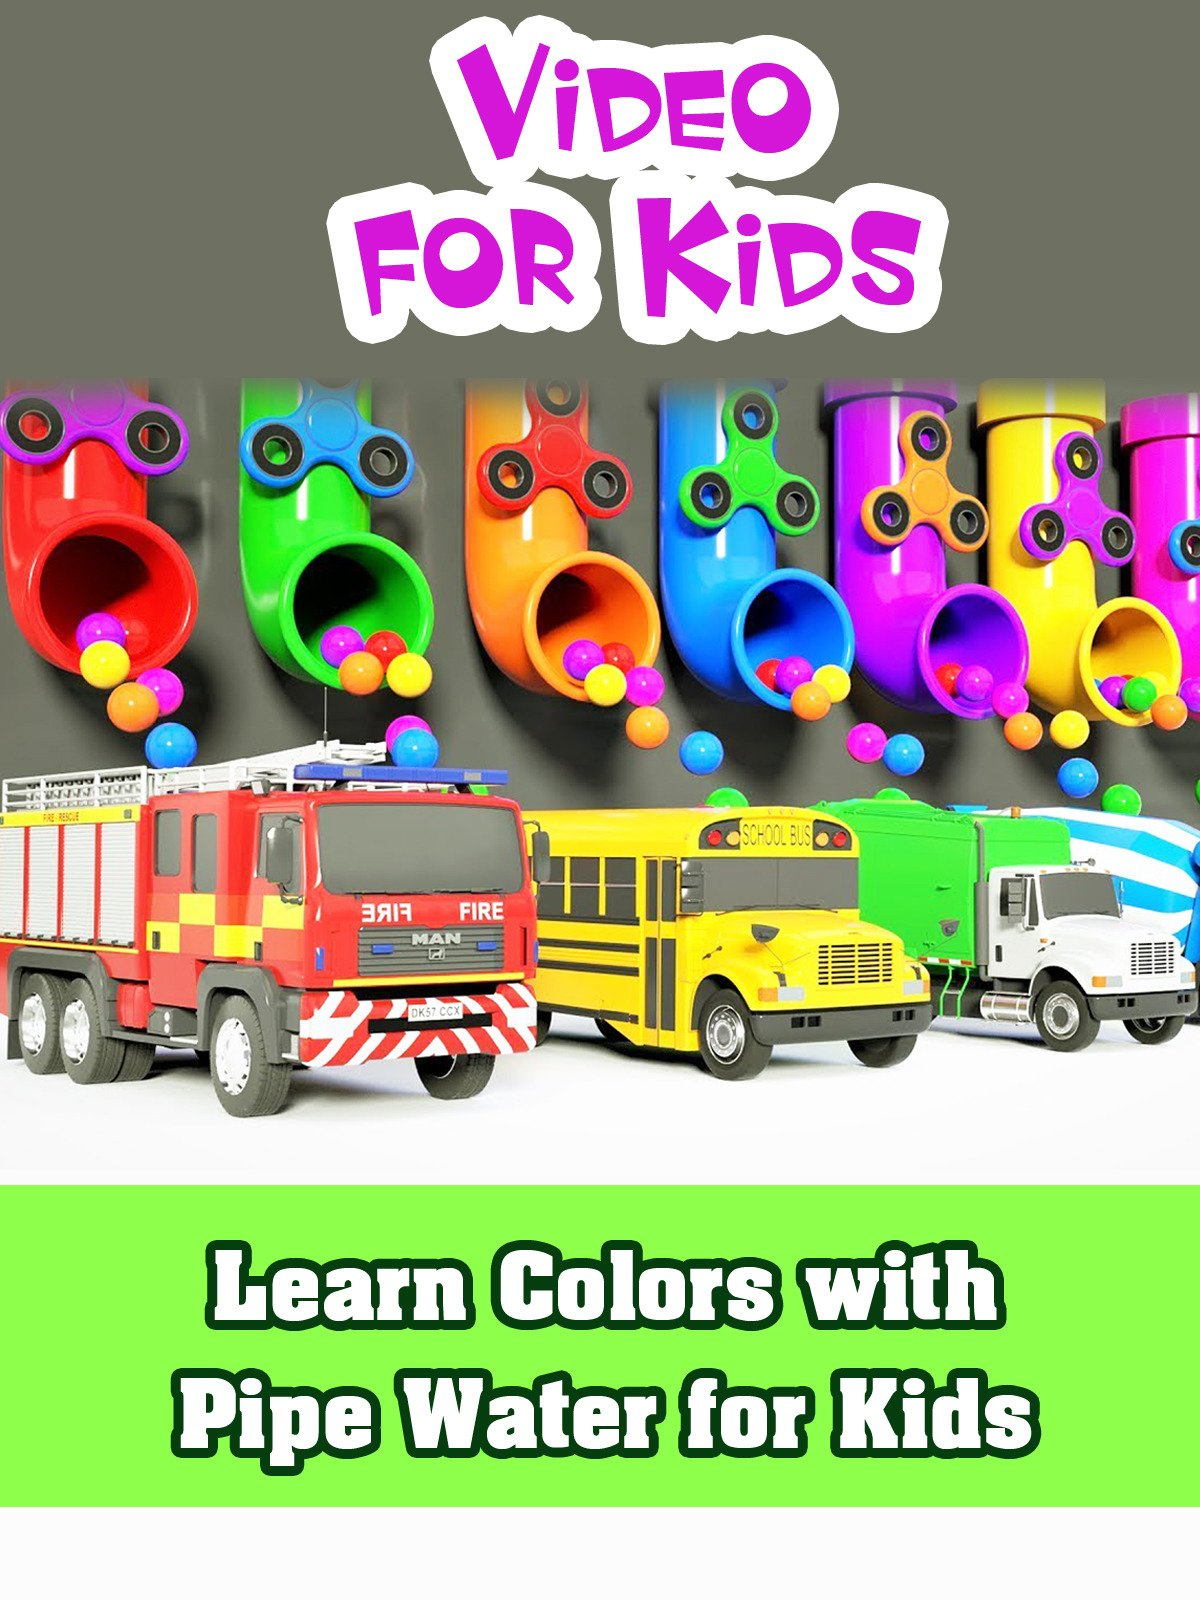 Learn Colors with Pipe Water for Kids